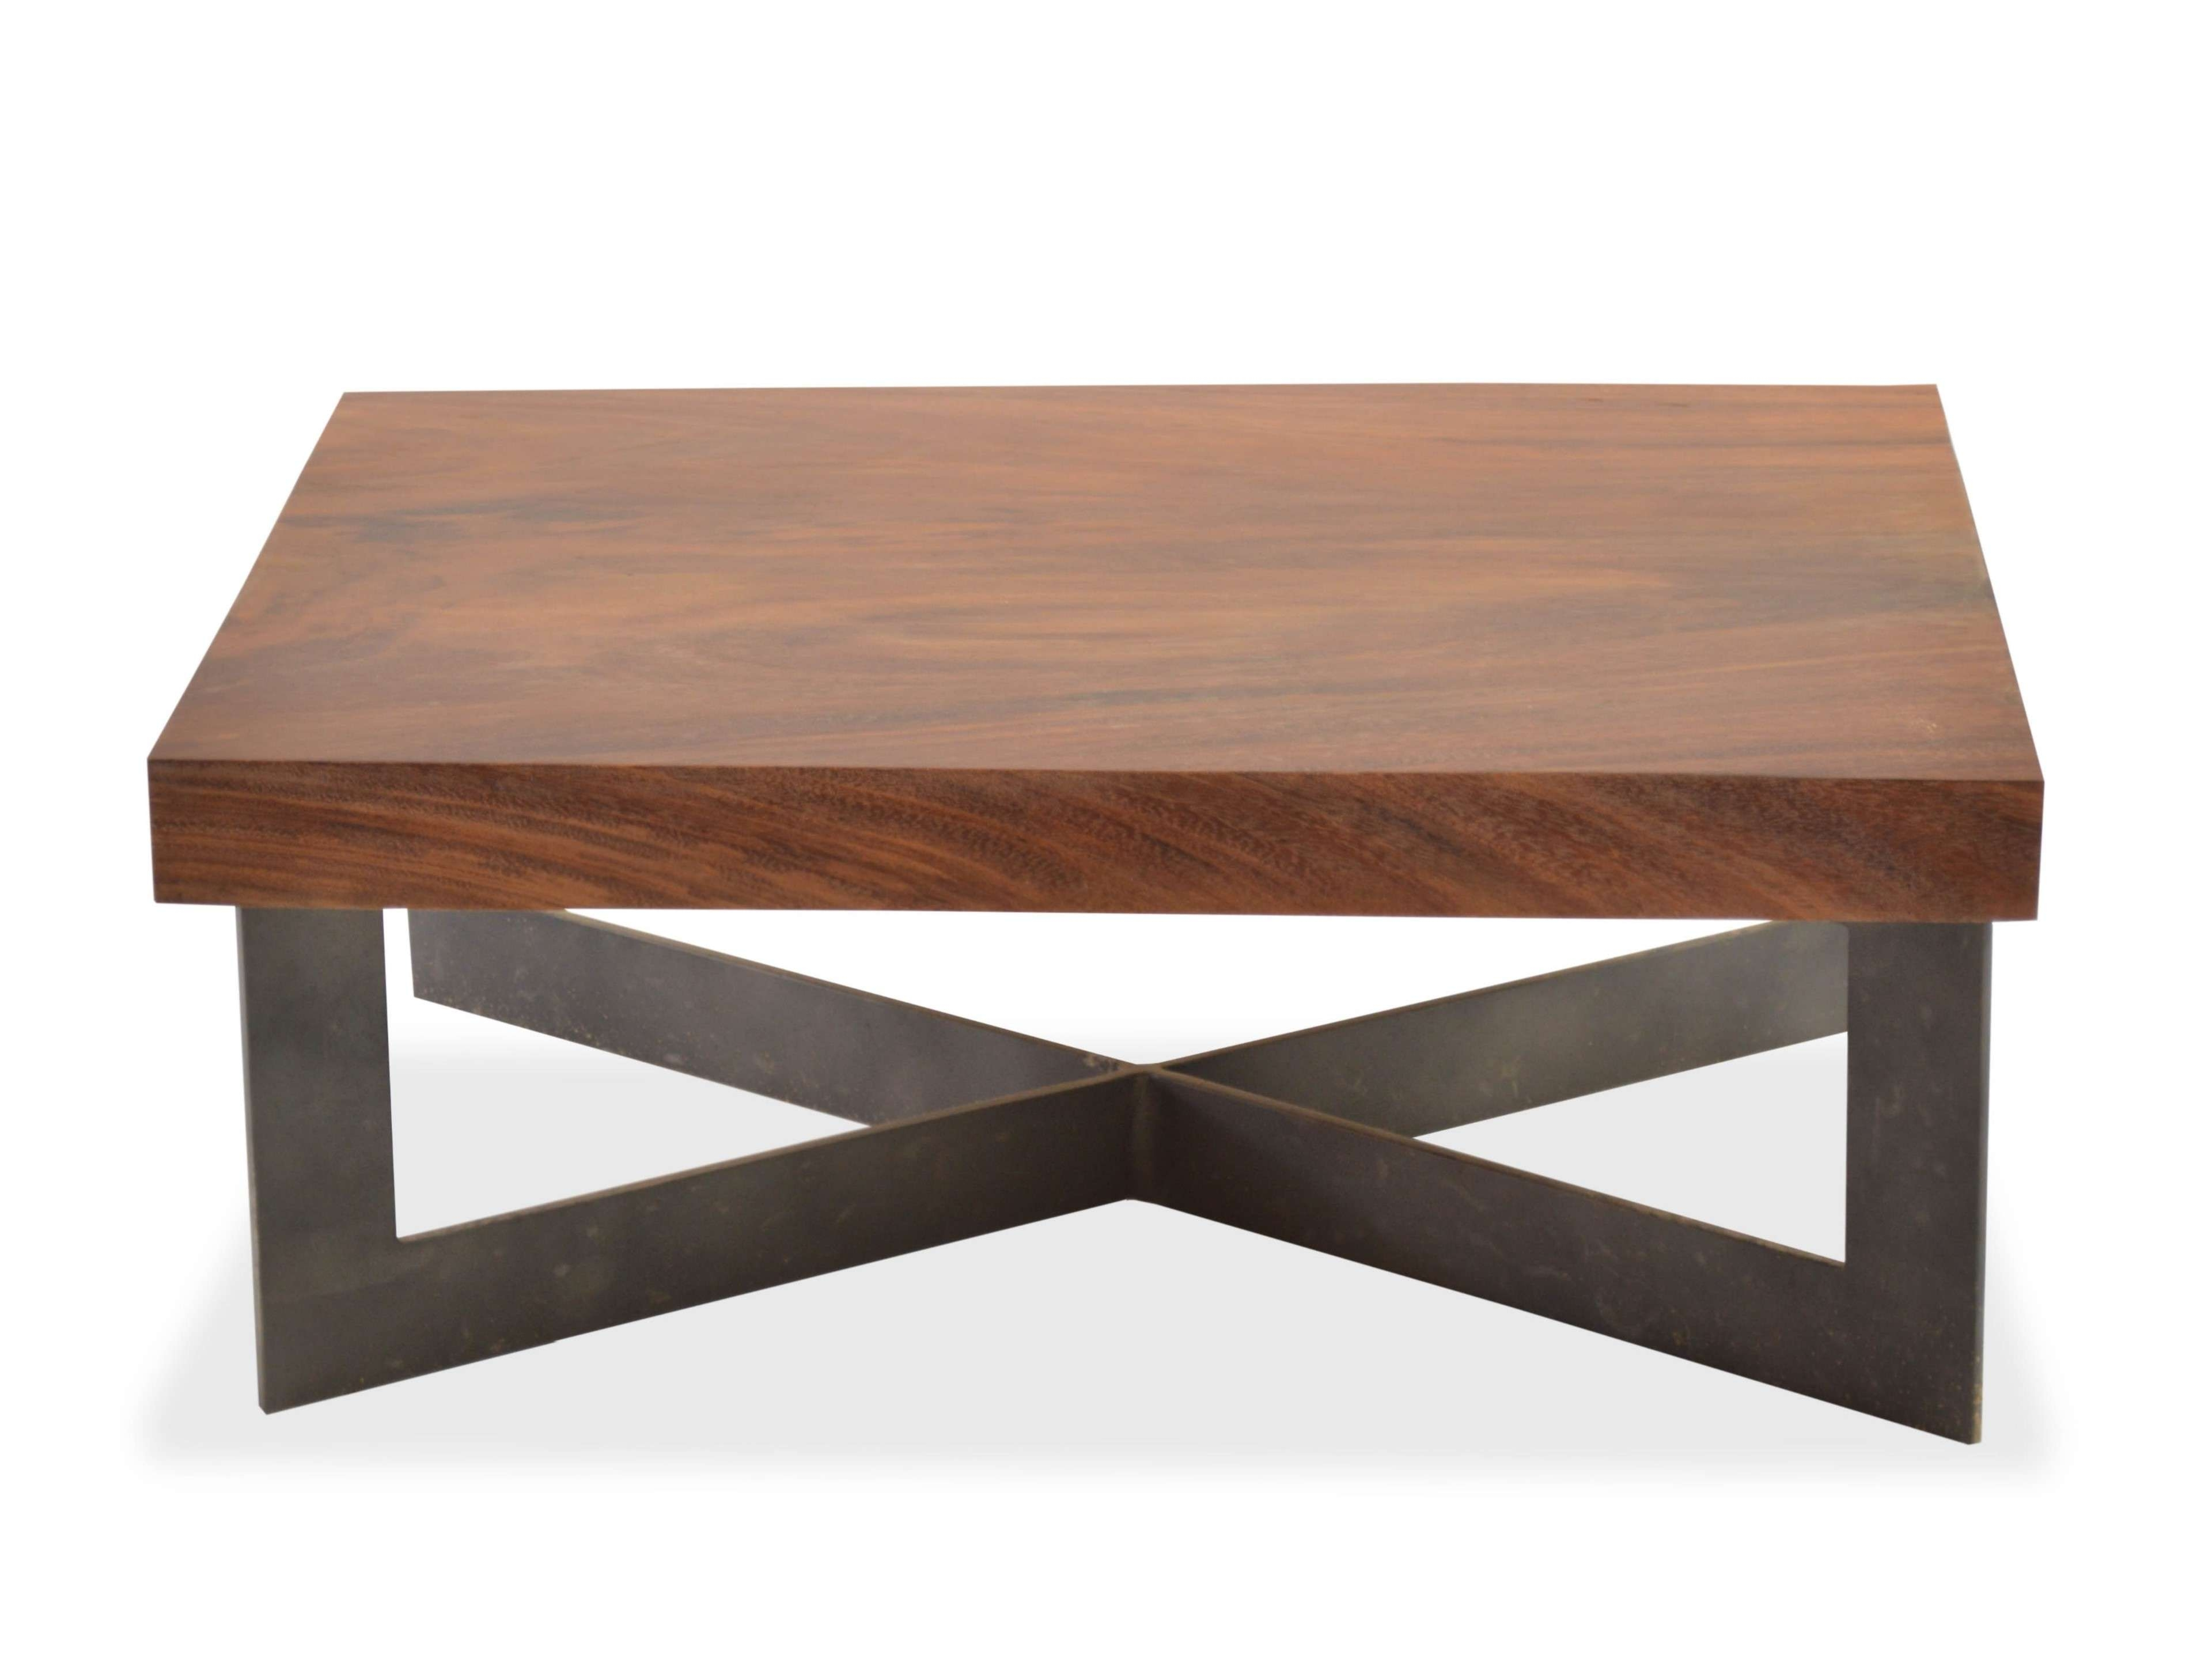 Garage Rustic Solid Wooden Chunky Tv Stand Wood Coffee Table Side For Recent Coffee Tables Solid Wood (View 10 of 20)